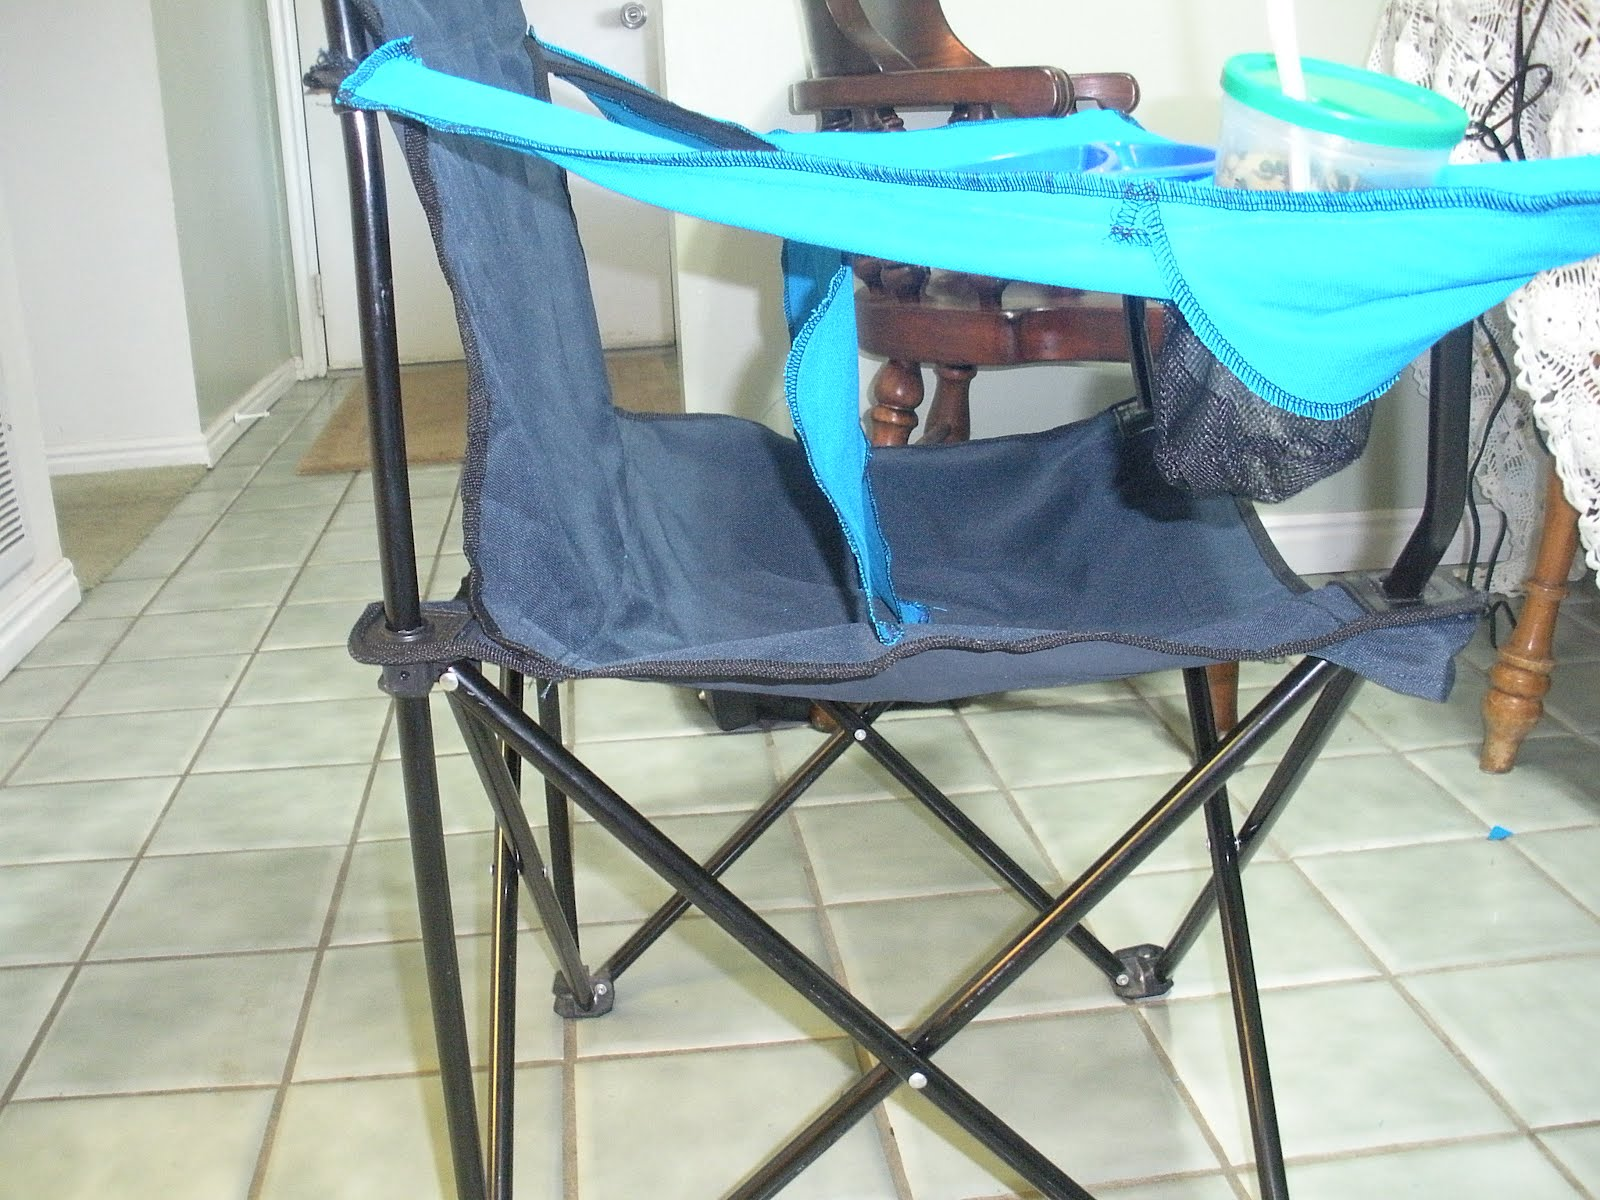 Baby Camping High Chair Adirondack Chairs Blueprints Life With The Anderson Diy